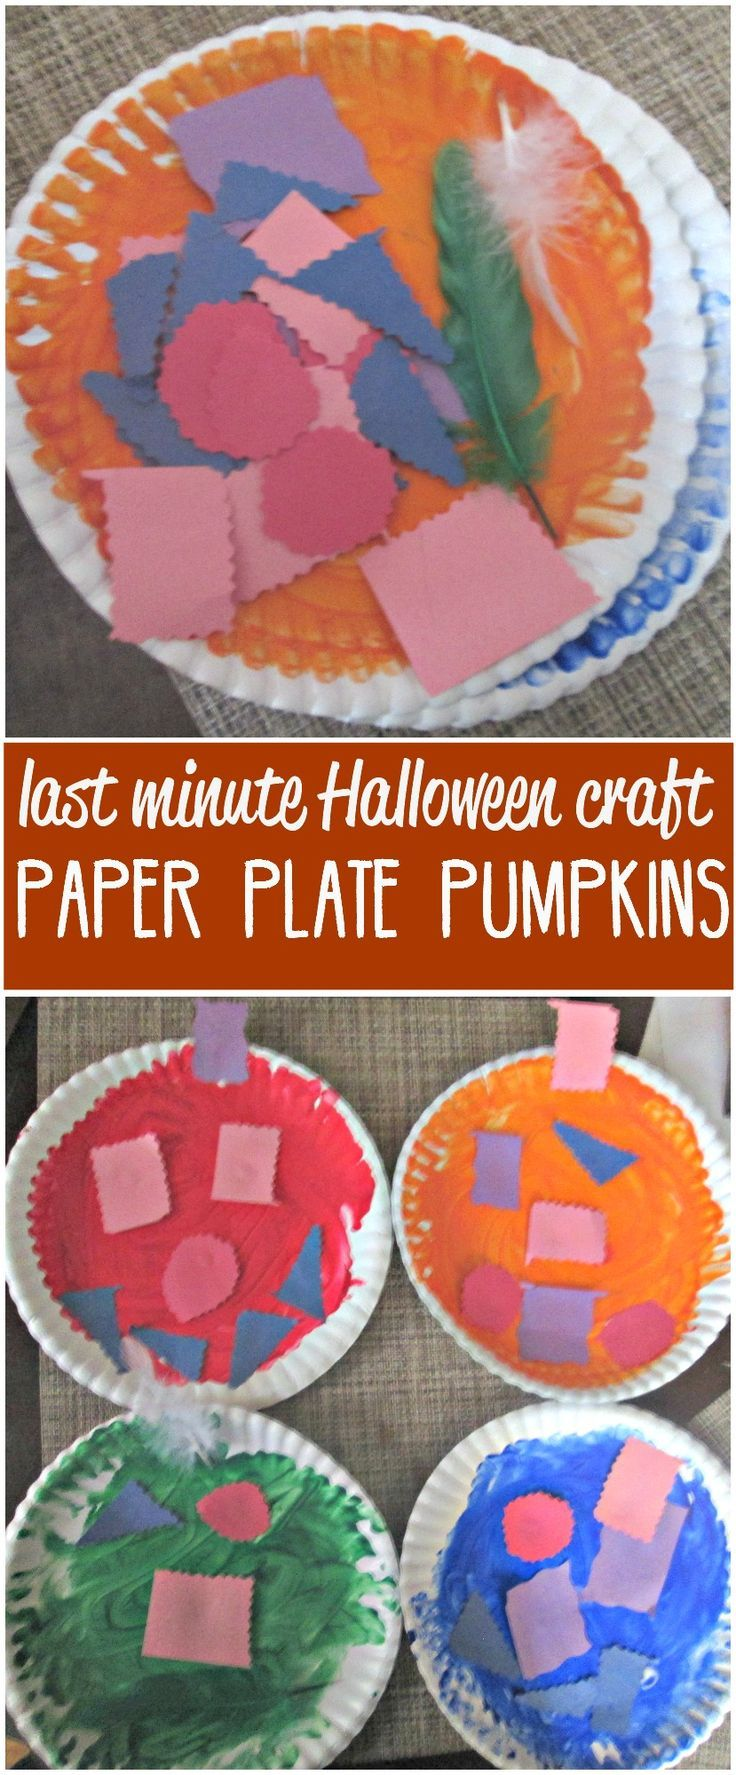 paper plate pumpkins paper plates halloween activities and plates minute halloween color halloween crafts shape plate pumpkins last minute paper plates halloween activities